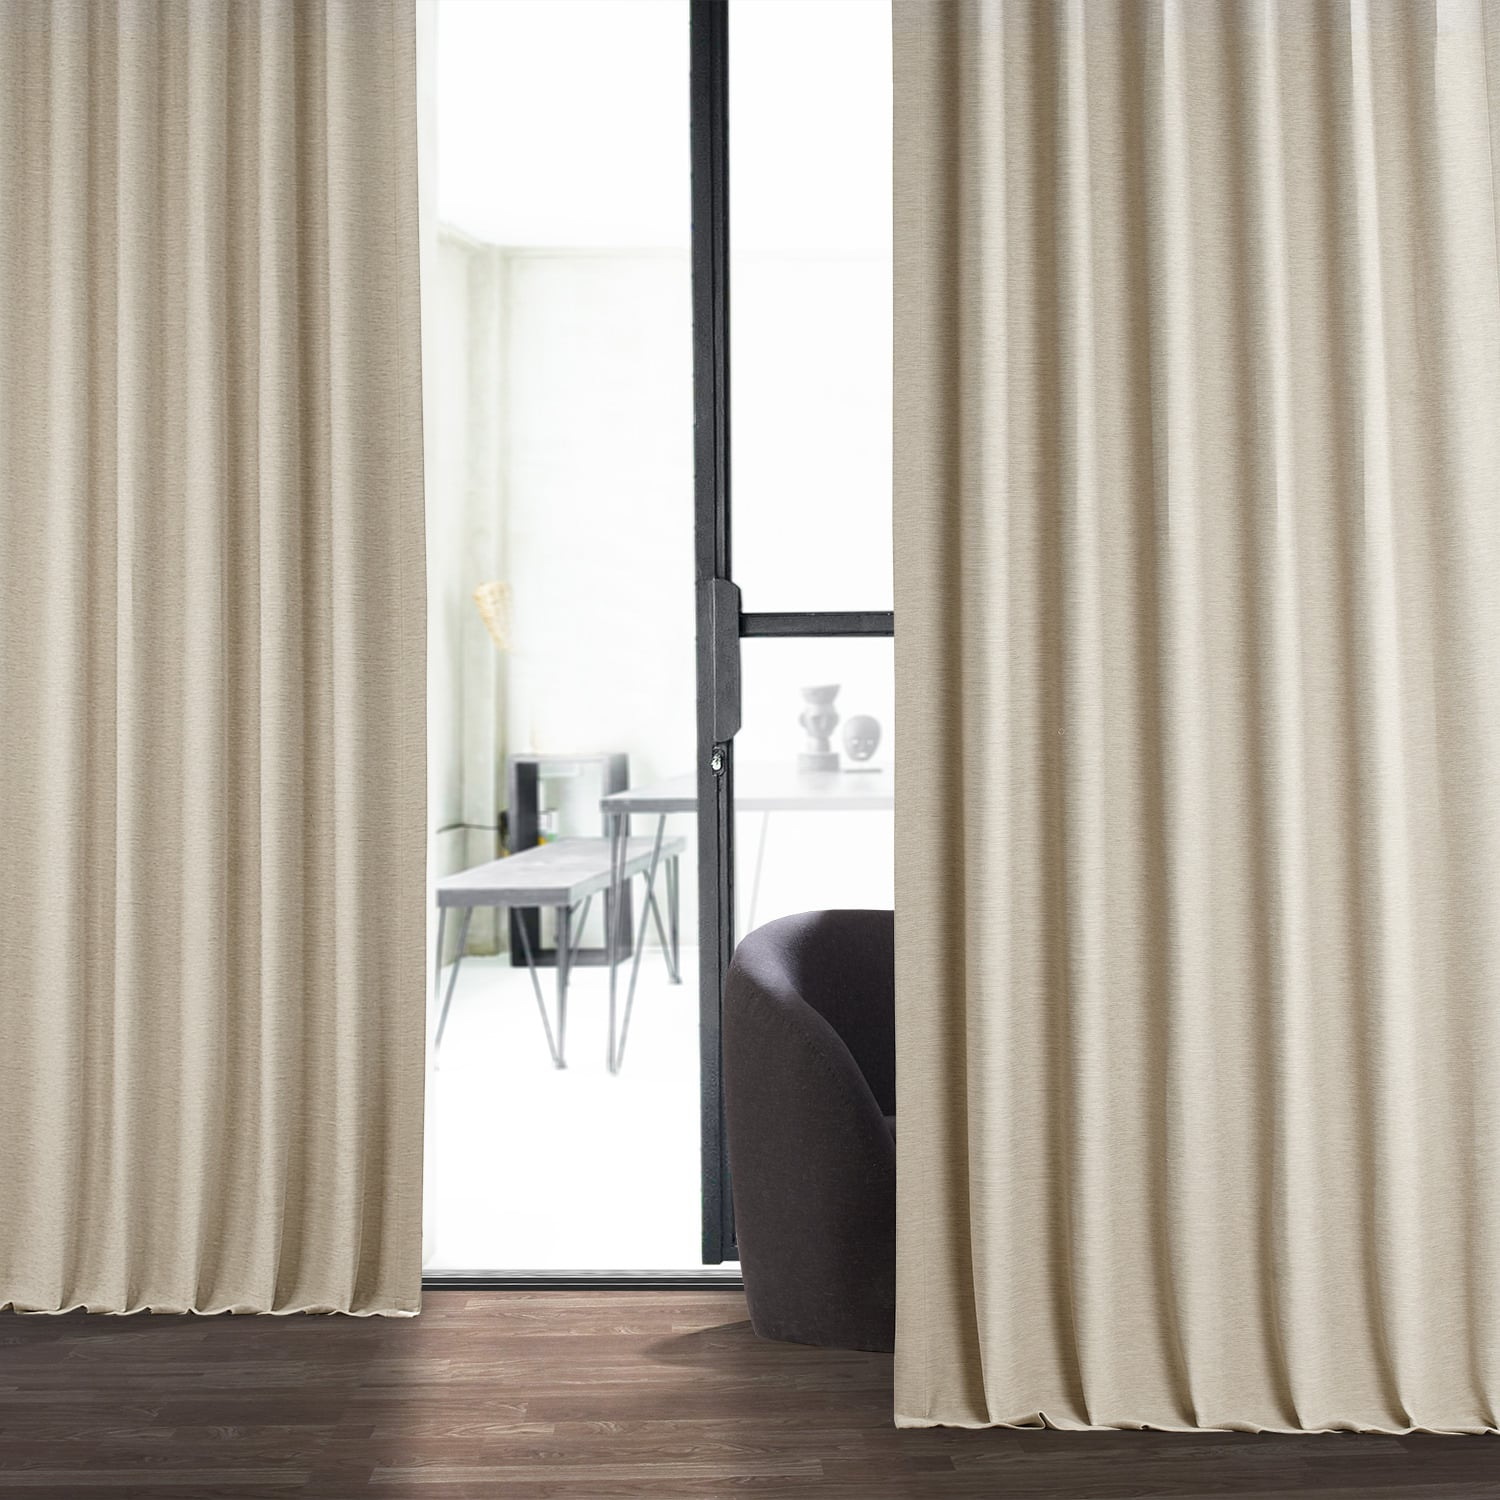 The Best Selection at the Best Prices. Our customers let us know - we have the Best selection of window treatments at the Best prices on the web. But, more importantly, most of our products are sewn in the U.S.A, at a price point that you can afford.